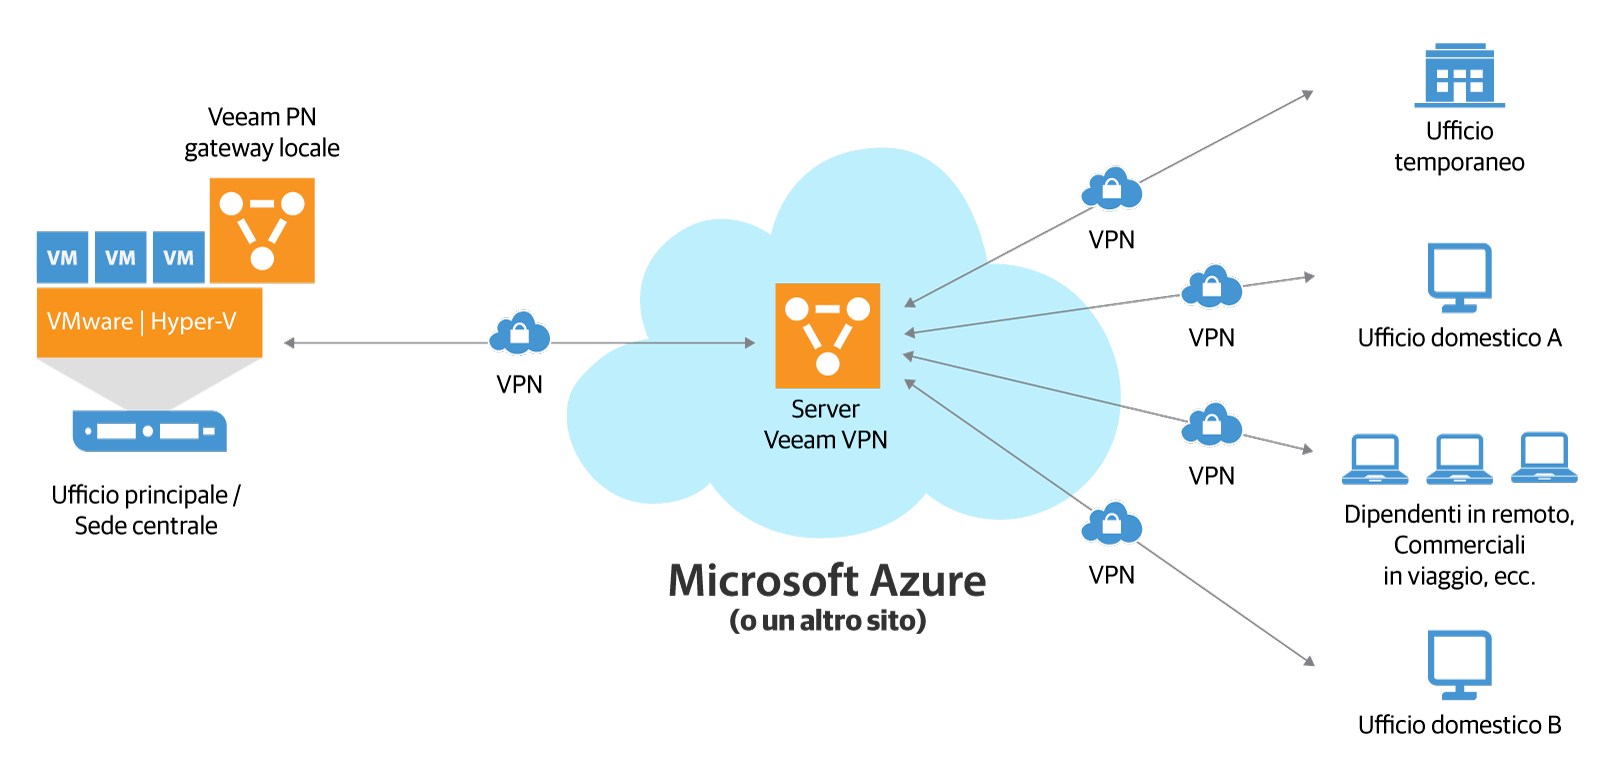 veeam_pn_for_microsoft_azure_it.png